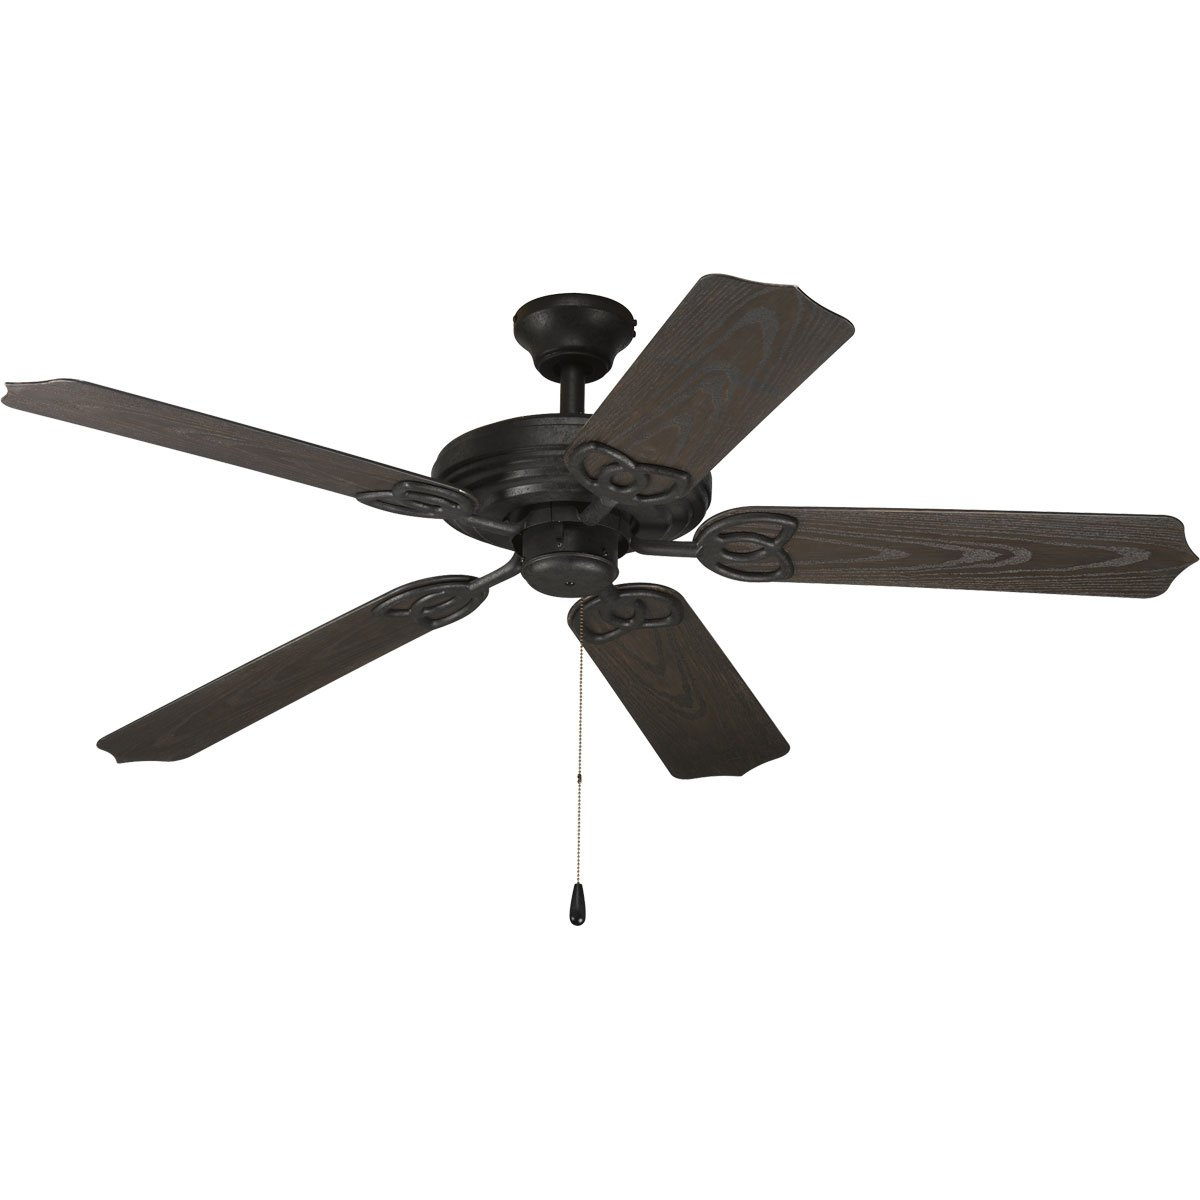 Progress Lighting P2502-80 52-Inch Indoor/Outdoor 5 Blade Fan with Toasted  Oak Blades, Forged Black - Ceiling Fans - Amazon.com - Progress Lighting P2502-80 52-Inch Indoor/Outdoor 5 Blade Fan With